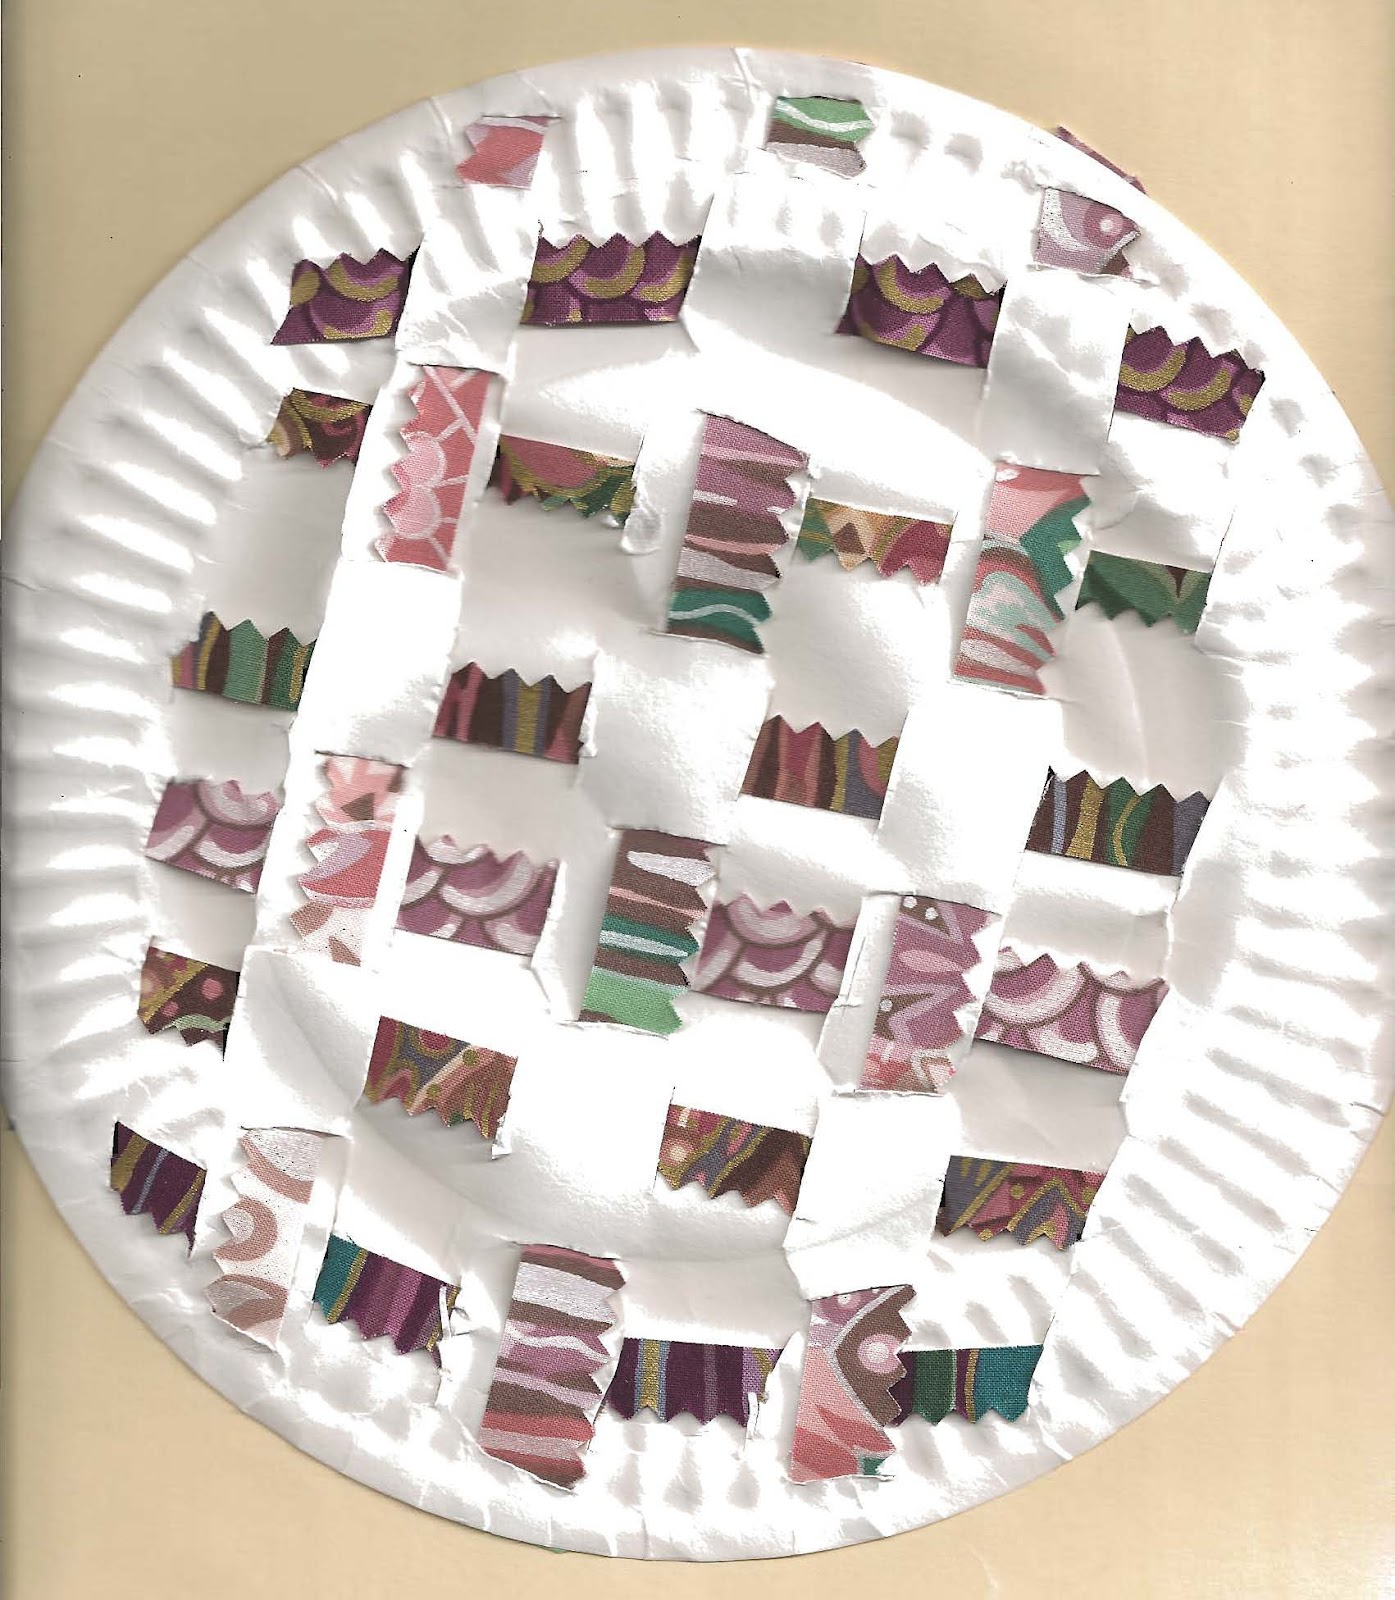 Arts u0026 Crafts Projects for Young Children-Weaving  sc 1 st  Marshau0027s Reading u0026 Crafts Cubbyhole - Blogger & Marshau0027s Reading u0026 Crafts Cubbyhole: Arts u0026 Crafts Projects for ...